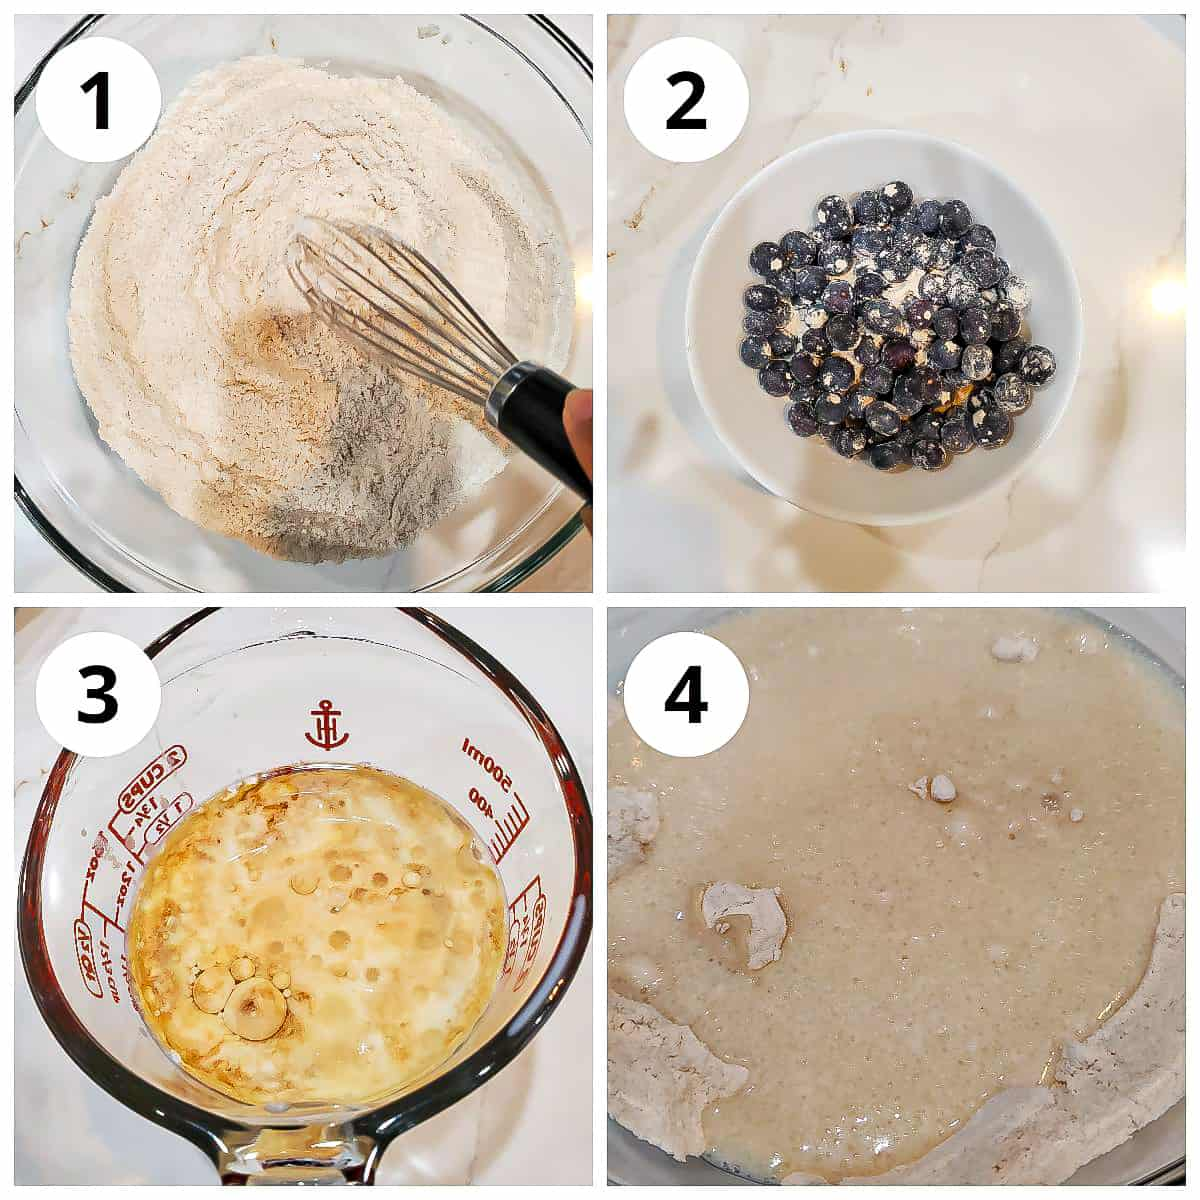 Steps to mix the wet and dry ingredients for eggless blueberry muffins